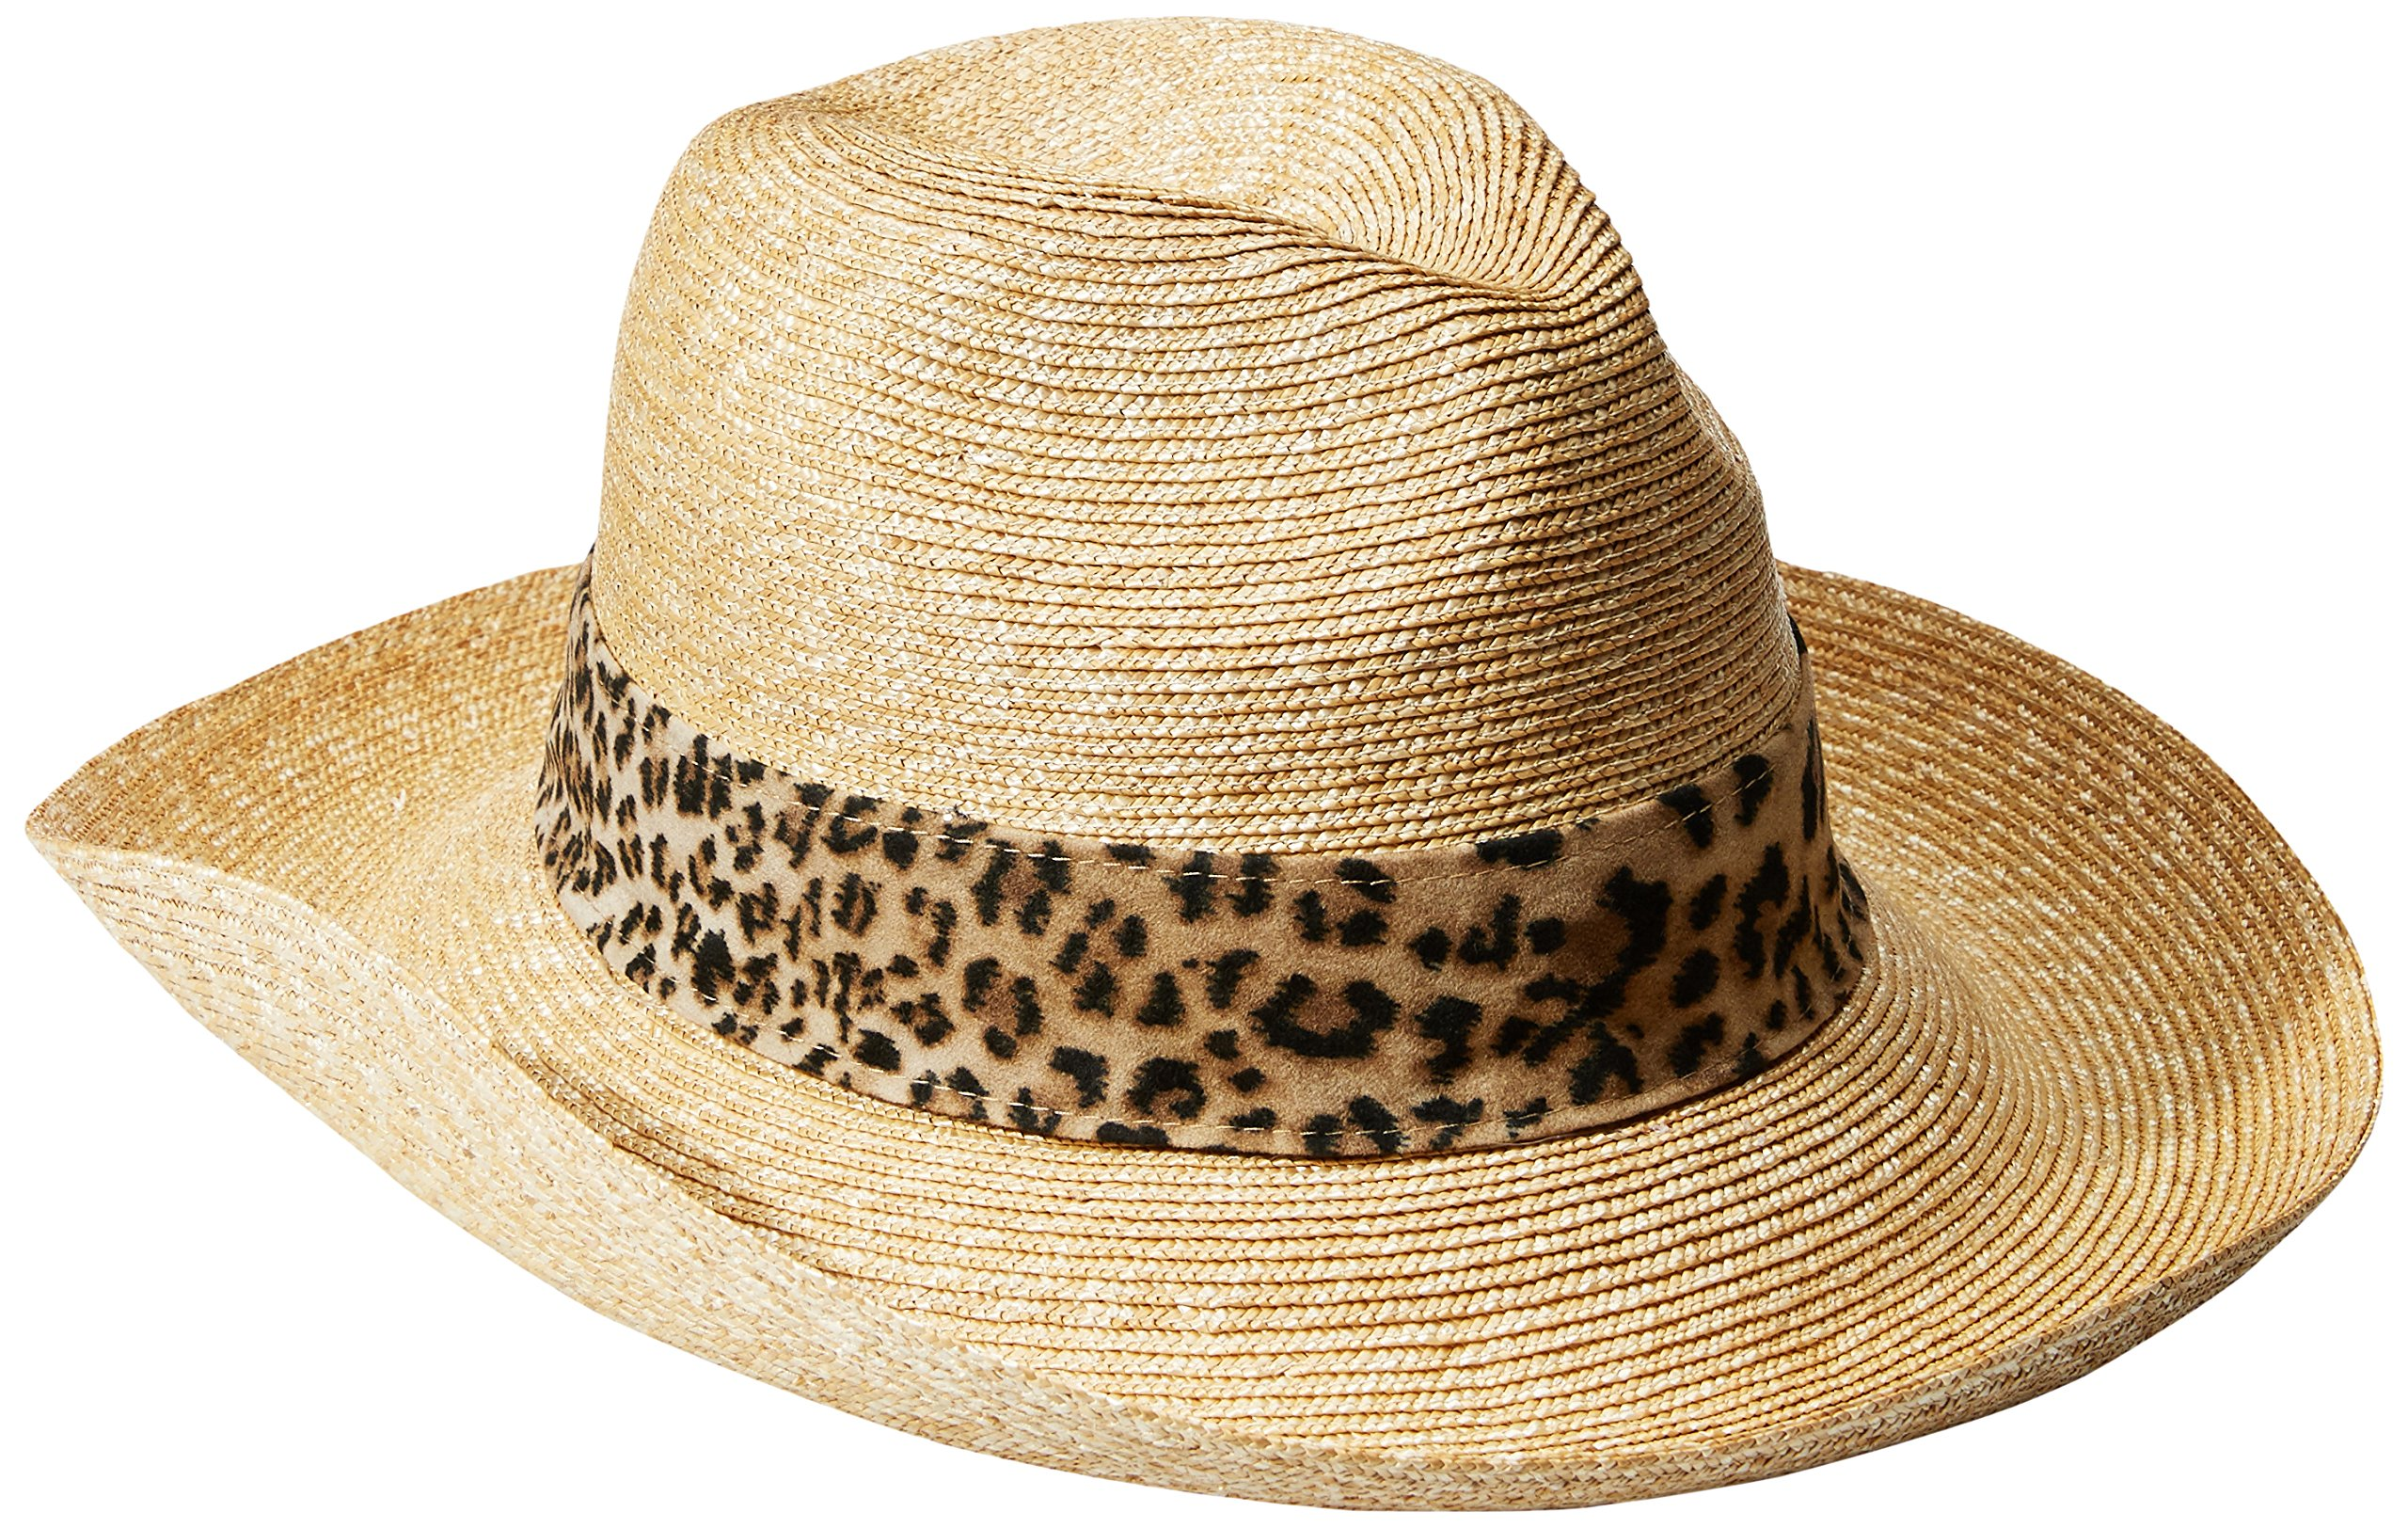 Gottex Women's Jungle Fever Sun Hat, Rated UPF 50+ For Max Sun Protection, Natural/Leopard, One Size